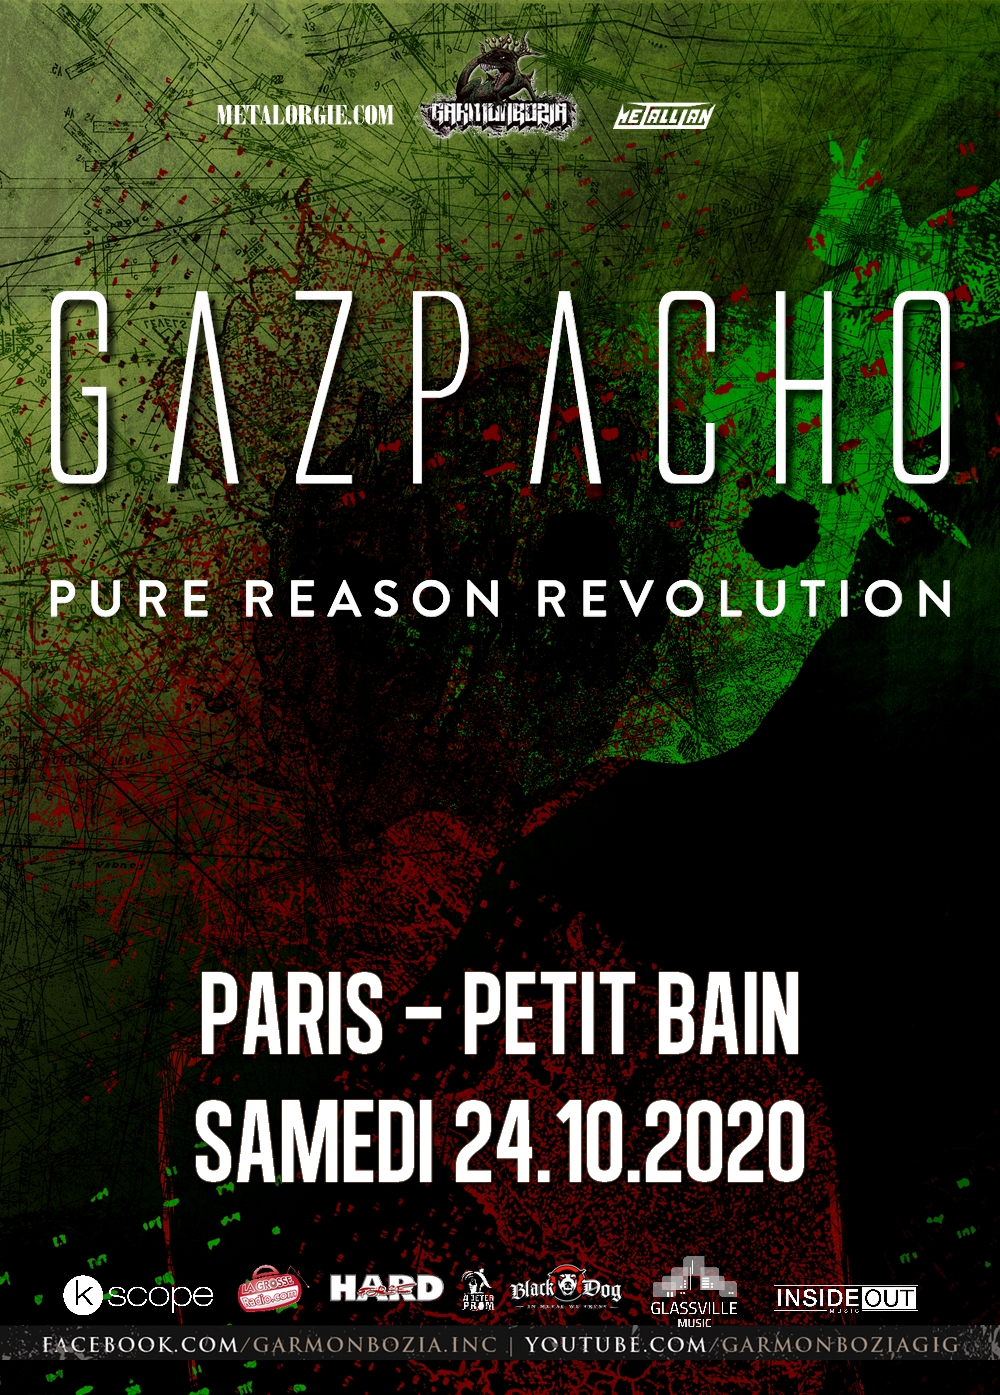 GAZPACHO + PURE REASON REVOLUTION